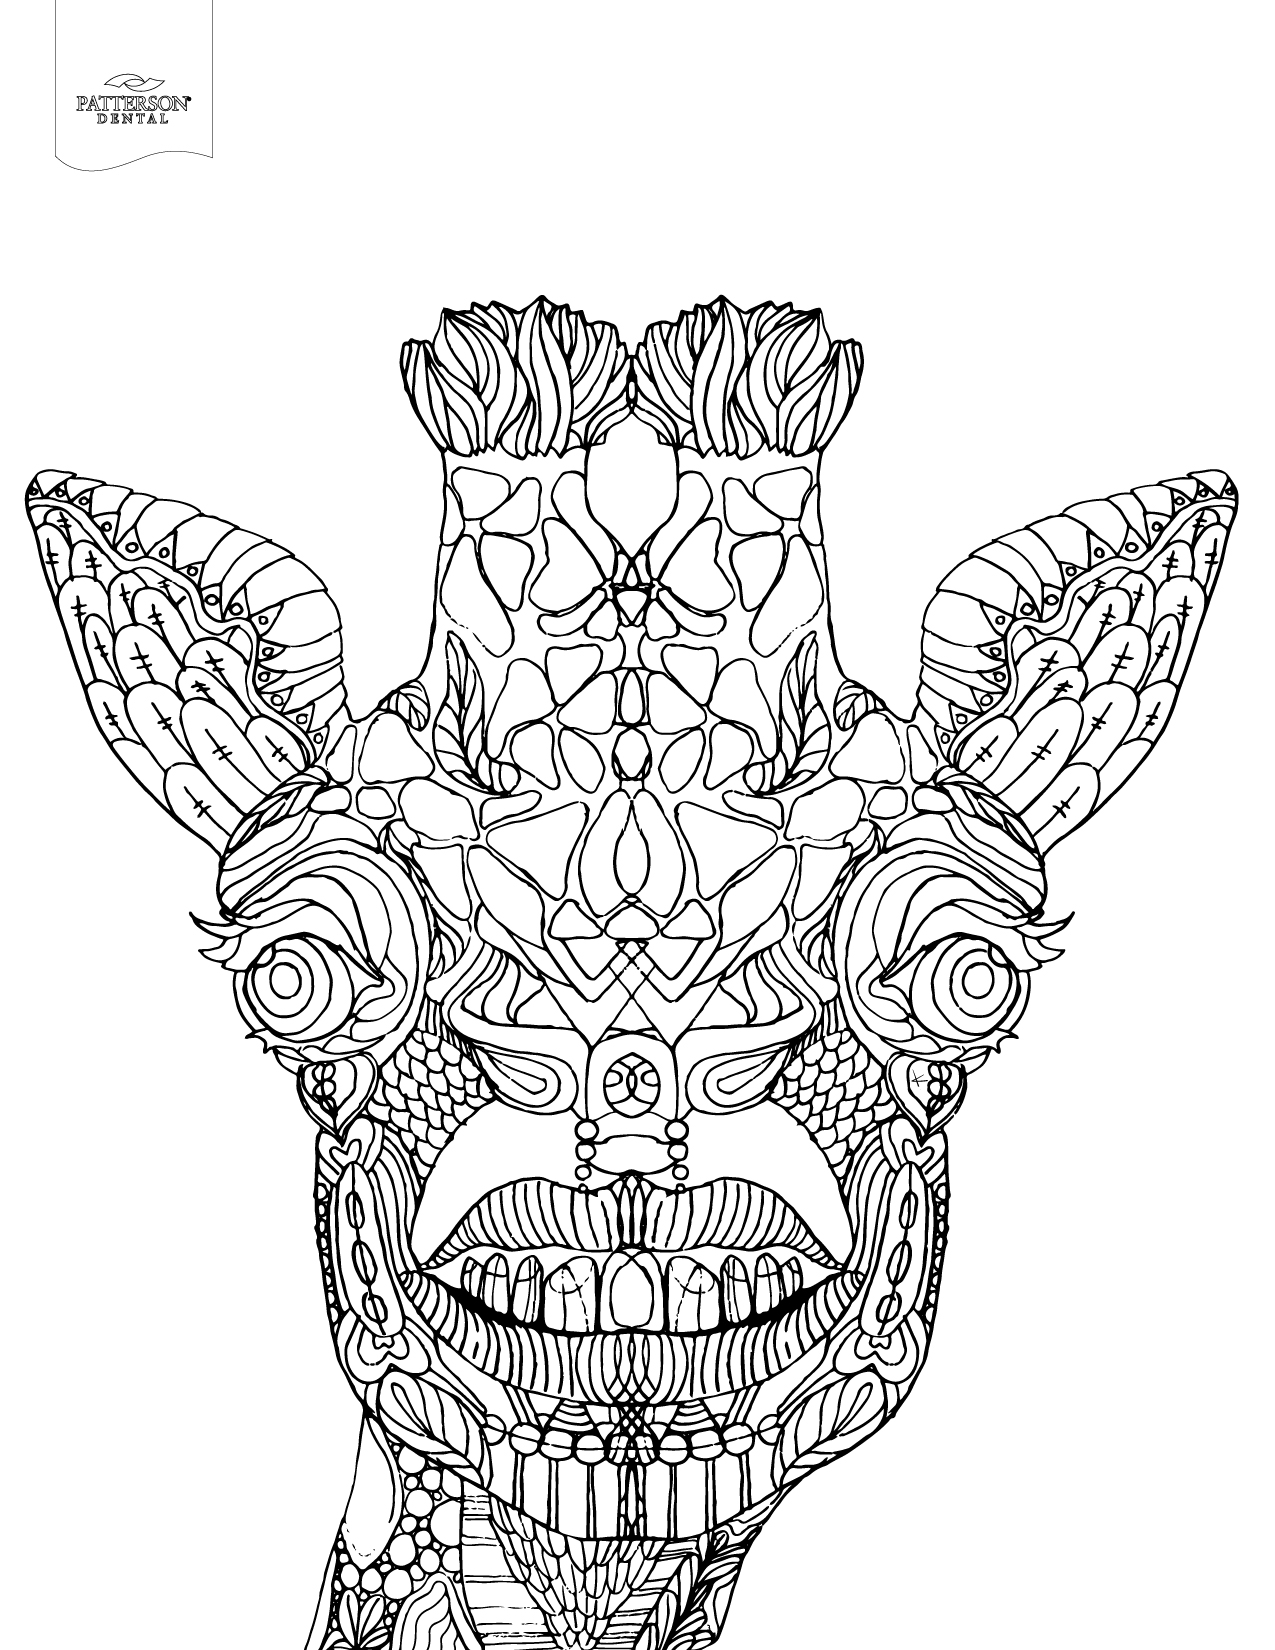 10 Toothy Adult Coloring Pages [Printable] – Off the Cusp